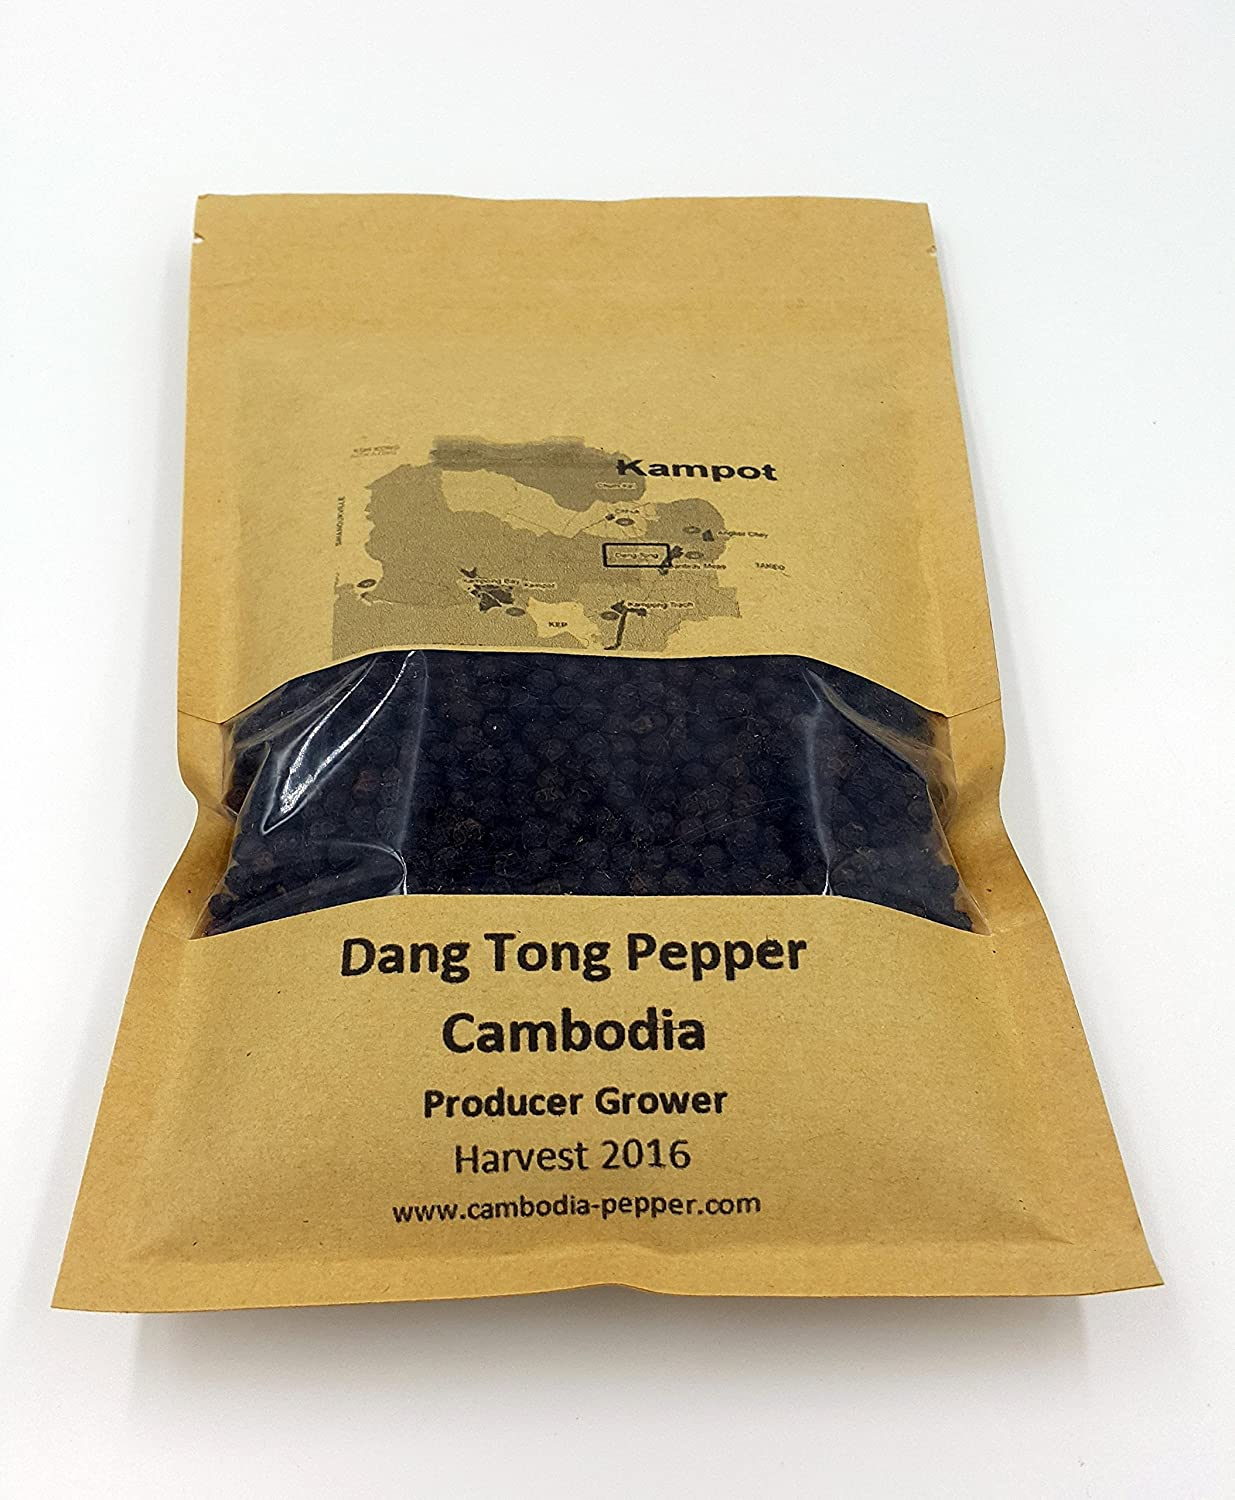 Rare Cambodian Pepper - KAMPOT - DANG TONG Black Pepper Gourmet Pepper whole Peppercorns 200 Gr - 7 Onces producer Grower harvest 2016 Cambodia